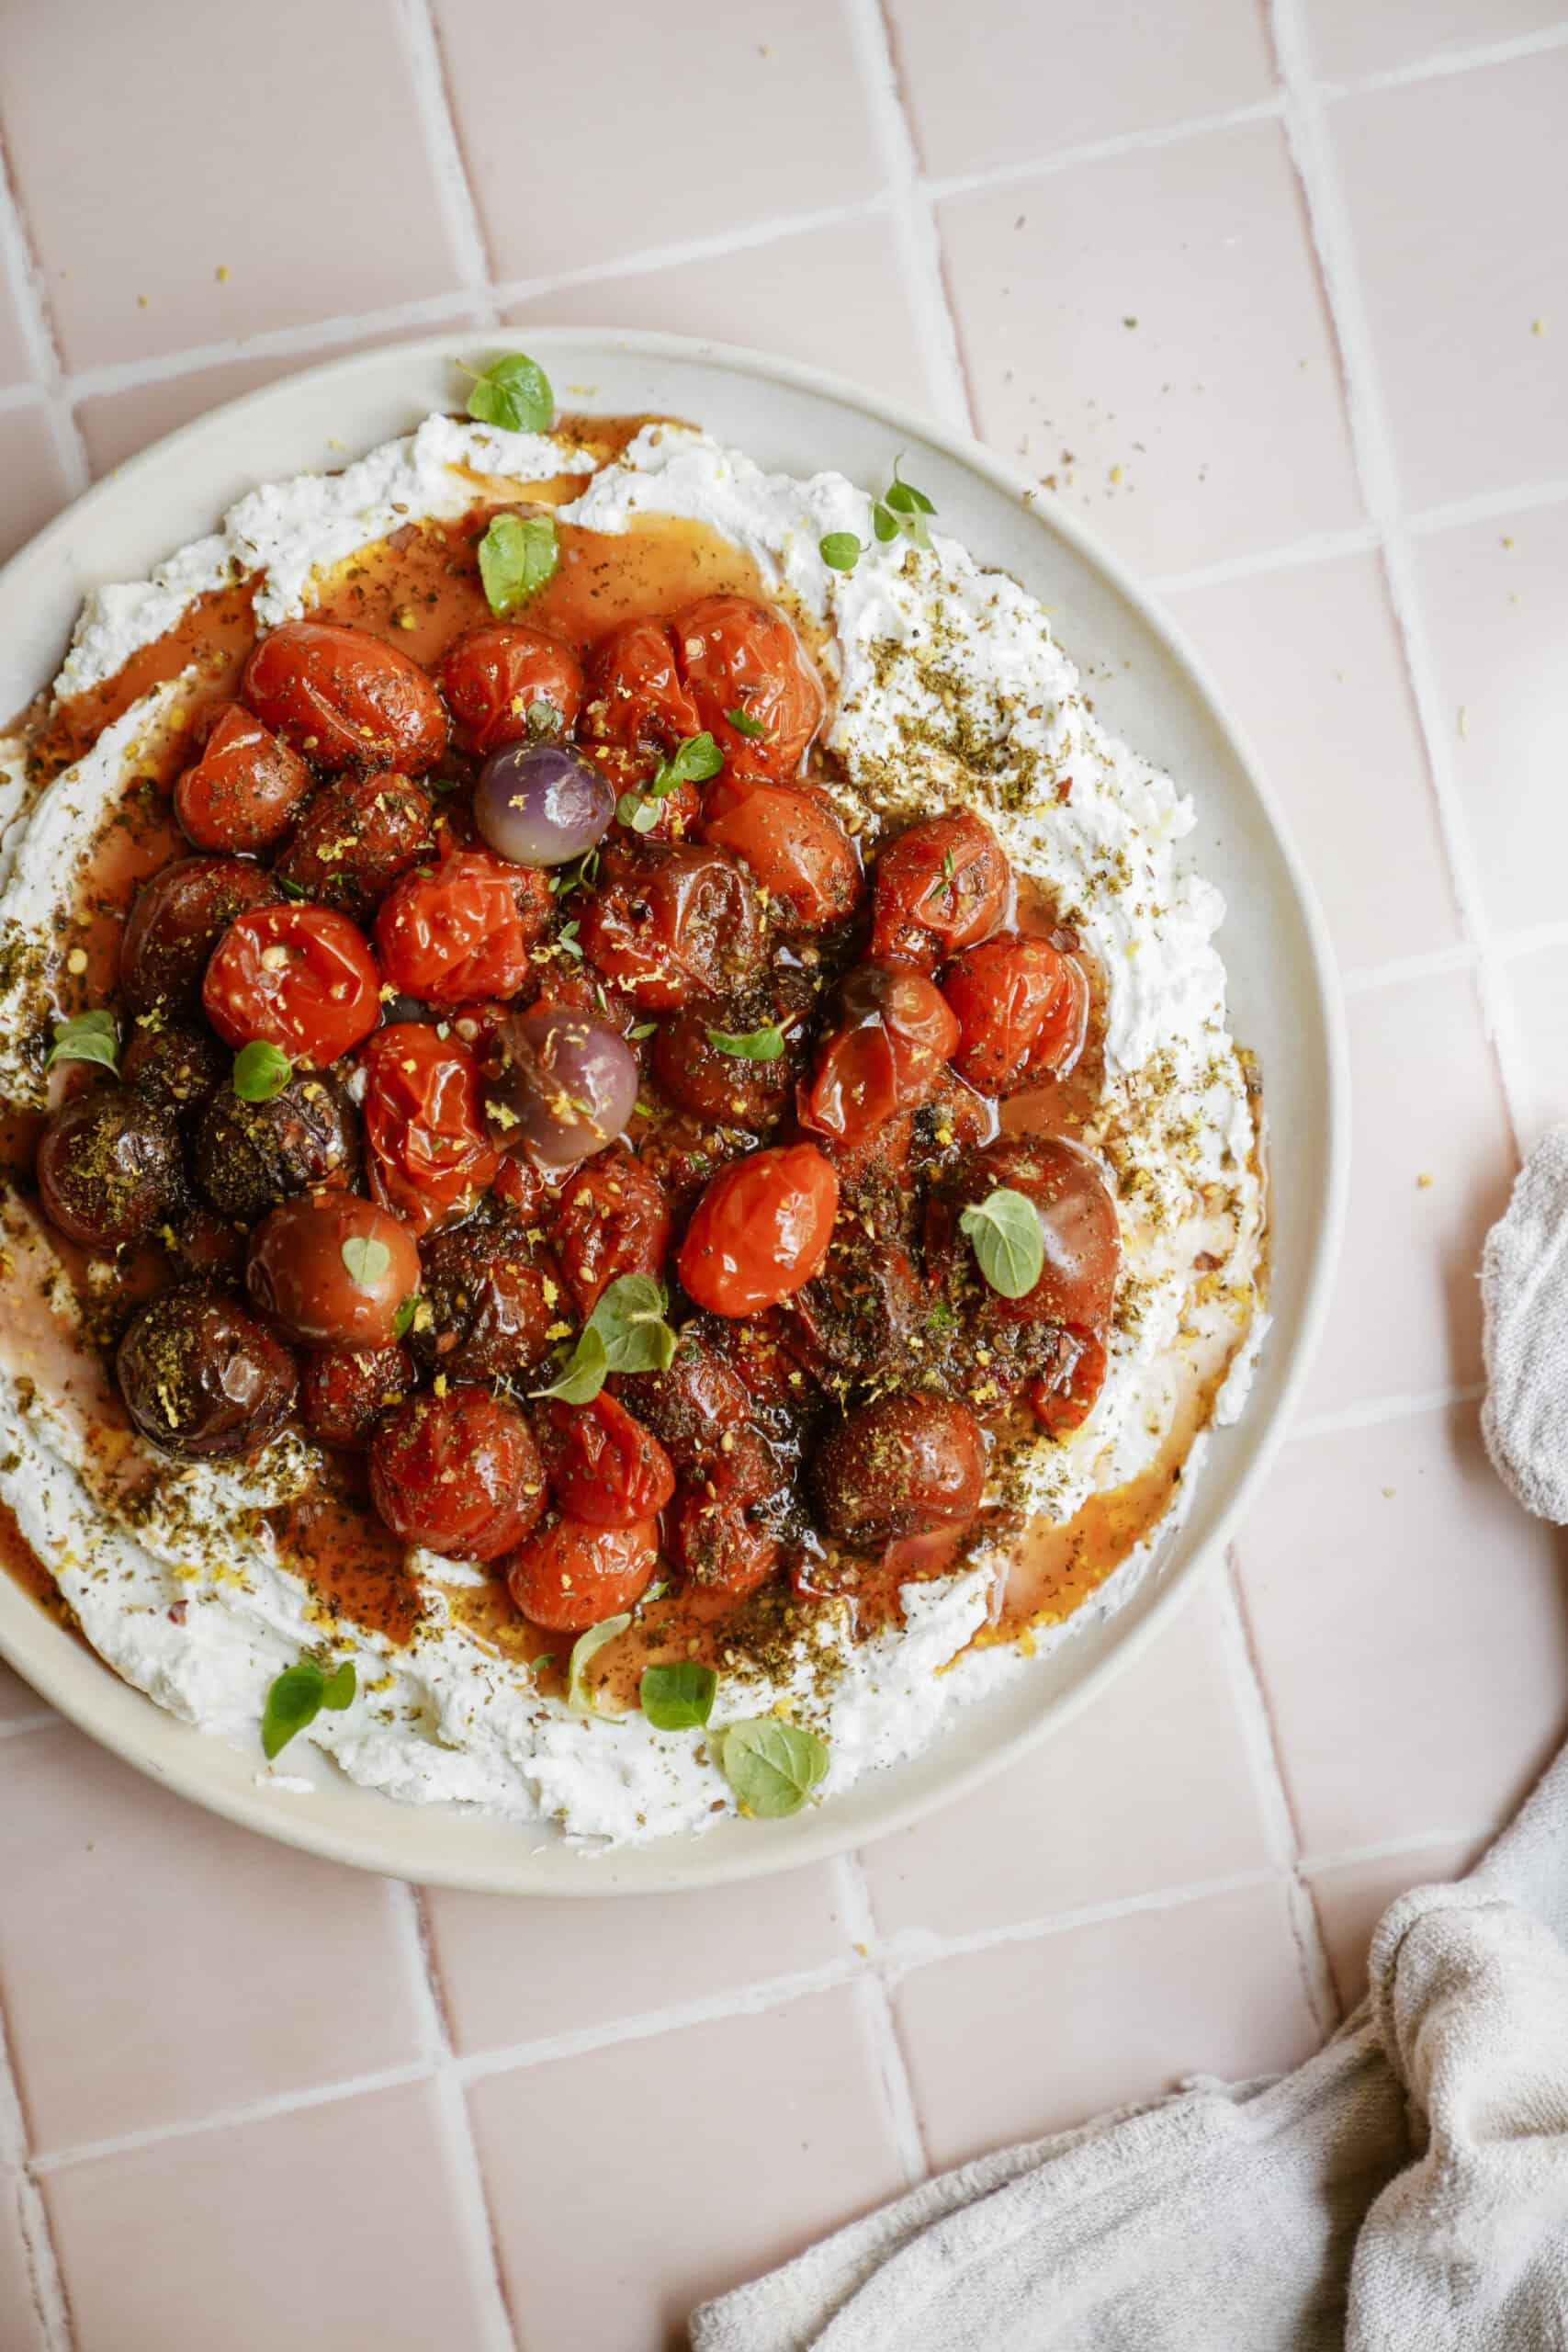 How to make labneh - a beautiful plate of labneh on a white counter